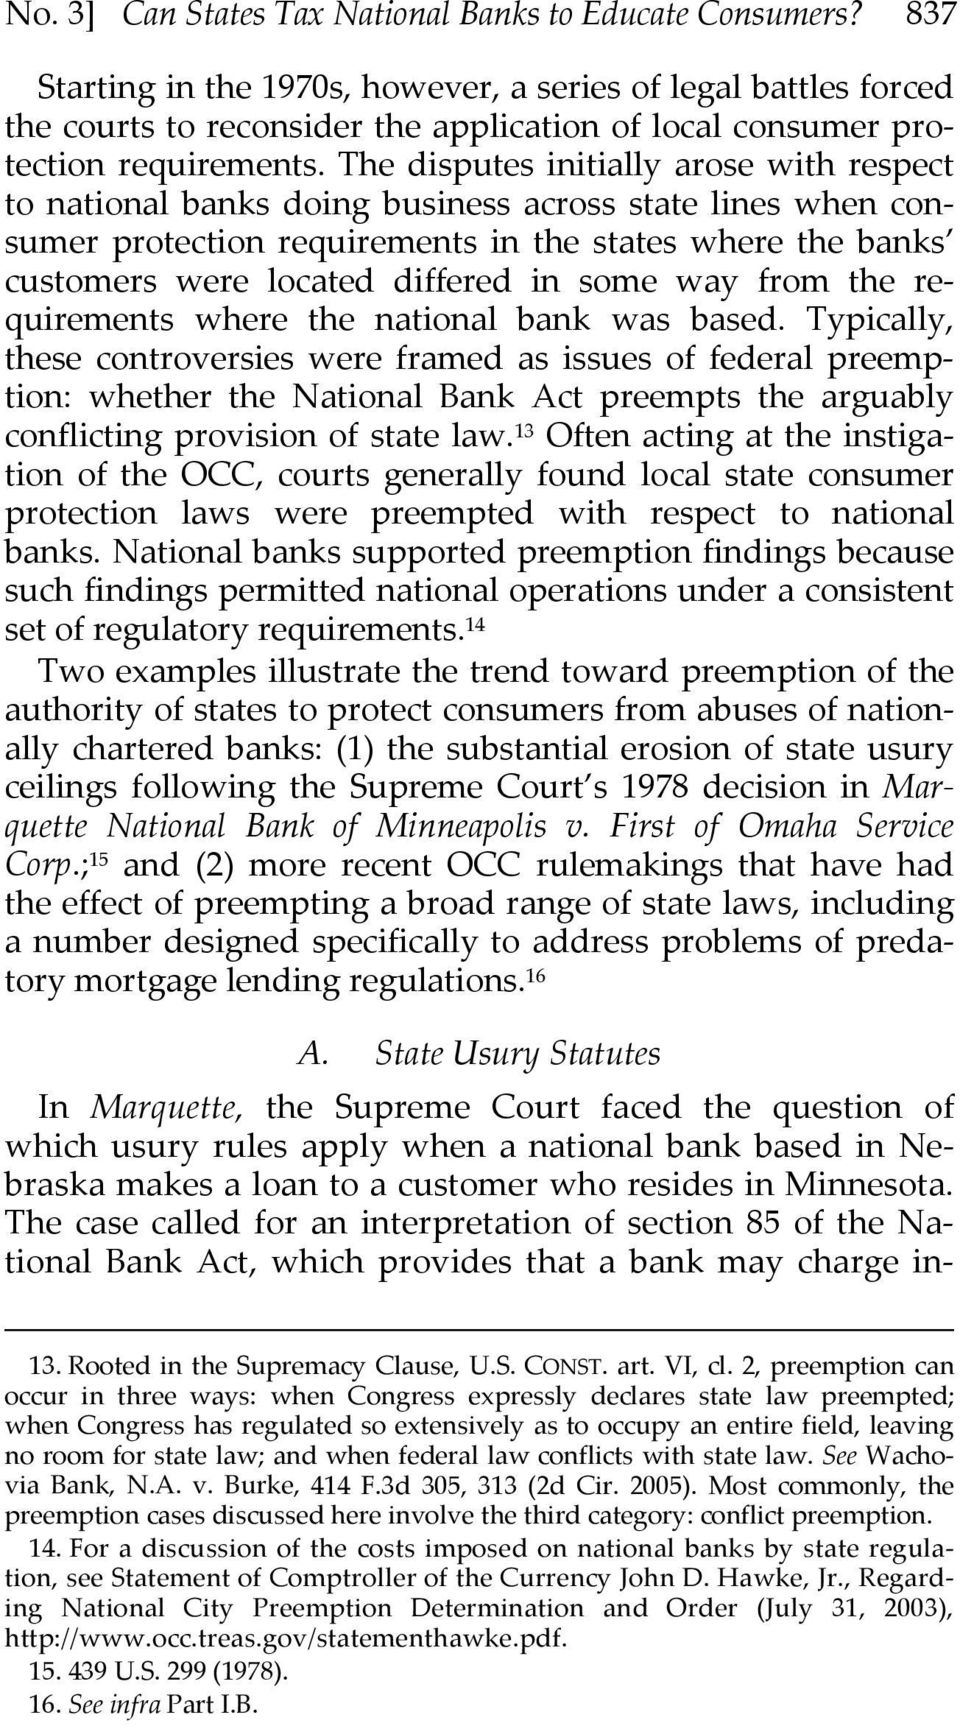 The disputes initially arose with respect to national banks doing business across state lines when consumer protection requirements in the states where the banks customers were located differed in